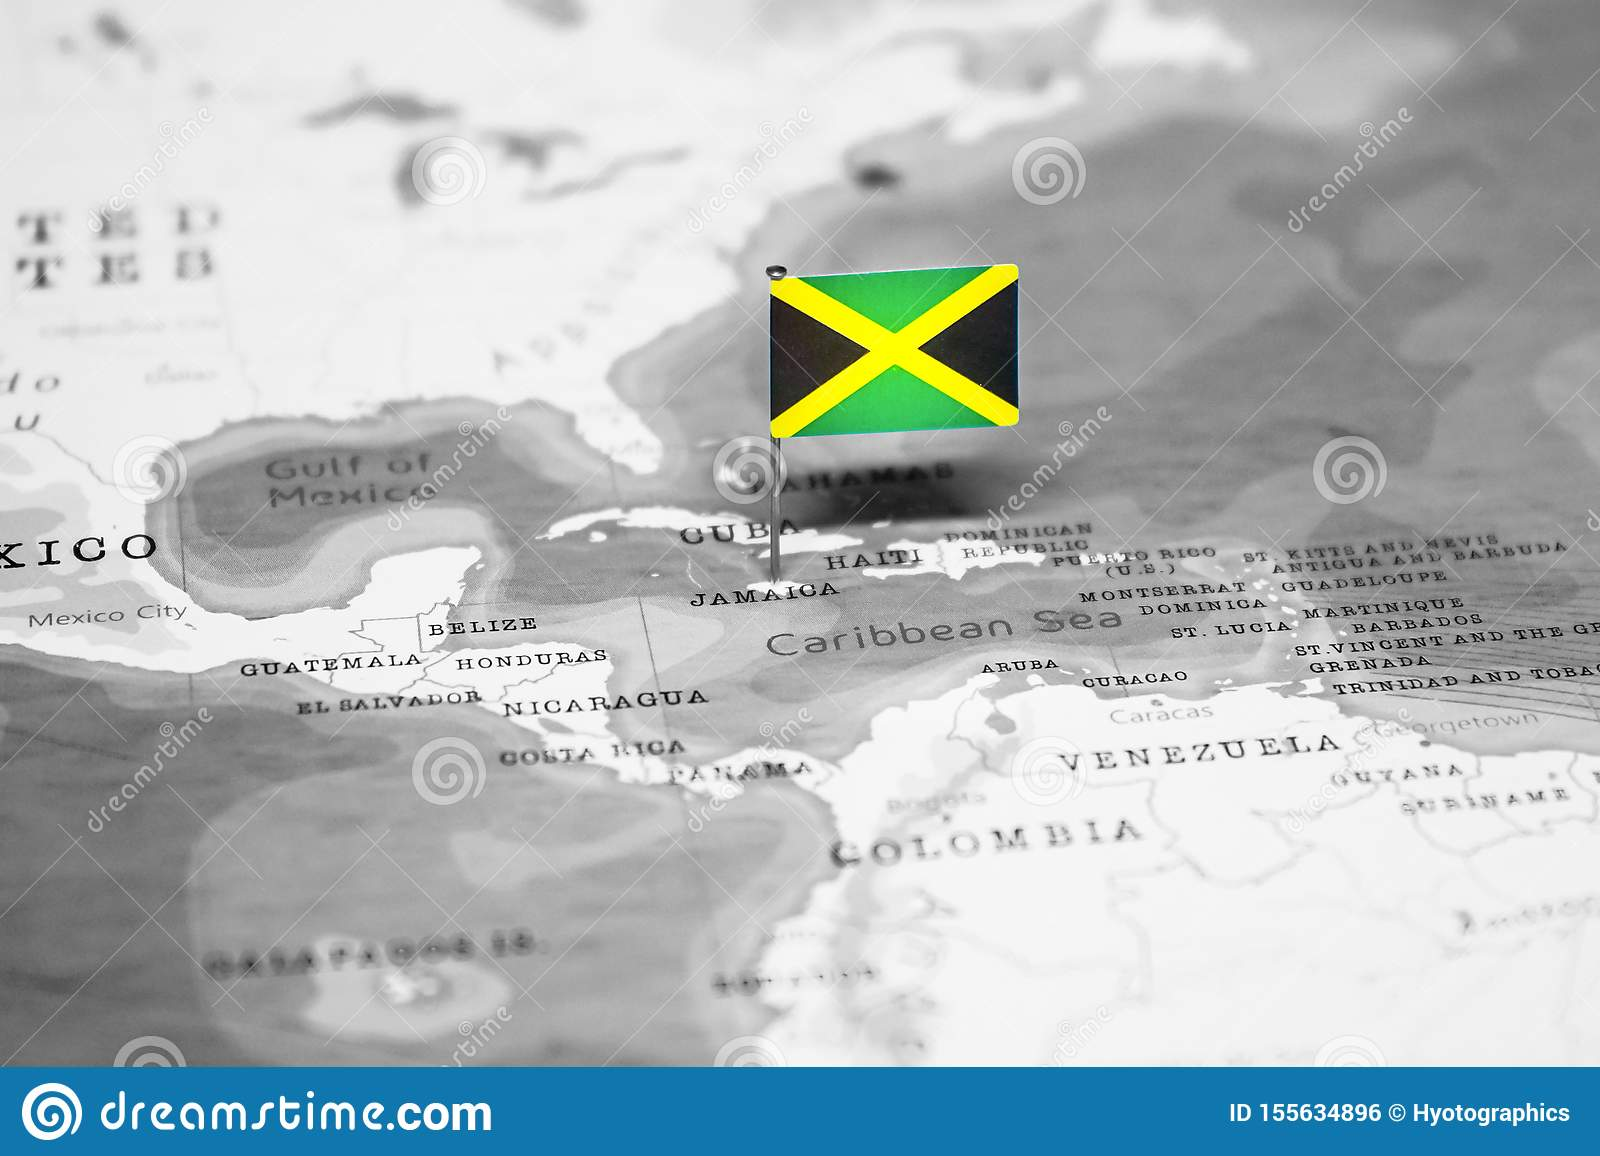 The Flag Of Jamaica In The World Map Stock Photo - Image of ...